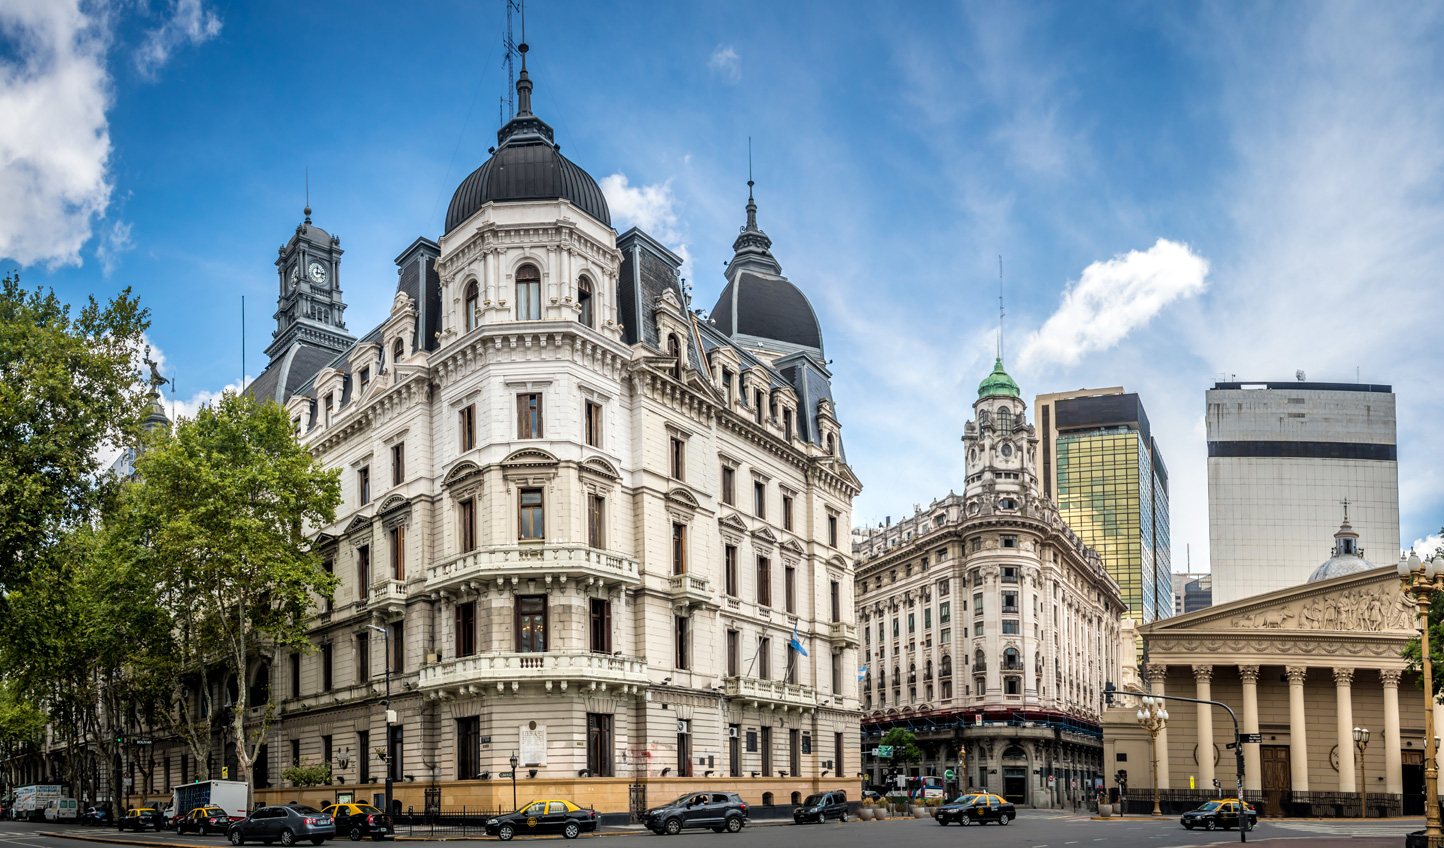 The European architecture in Buenos Aires makes it a unique Latin American city to visit